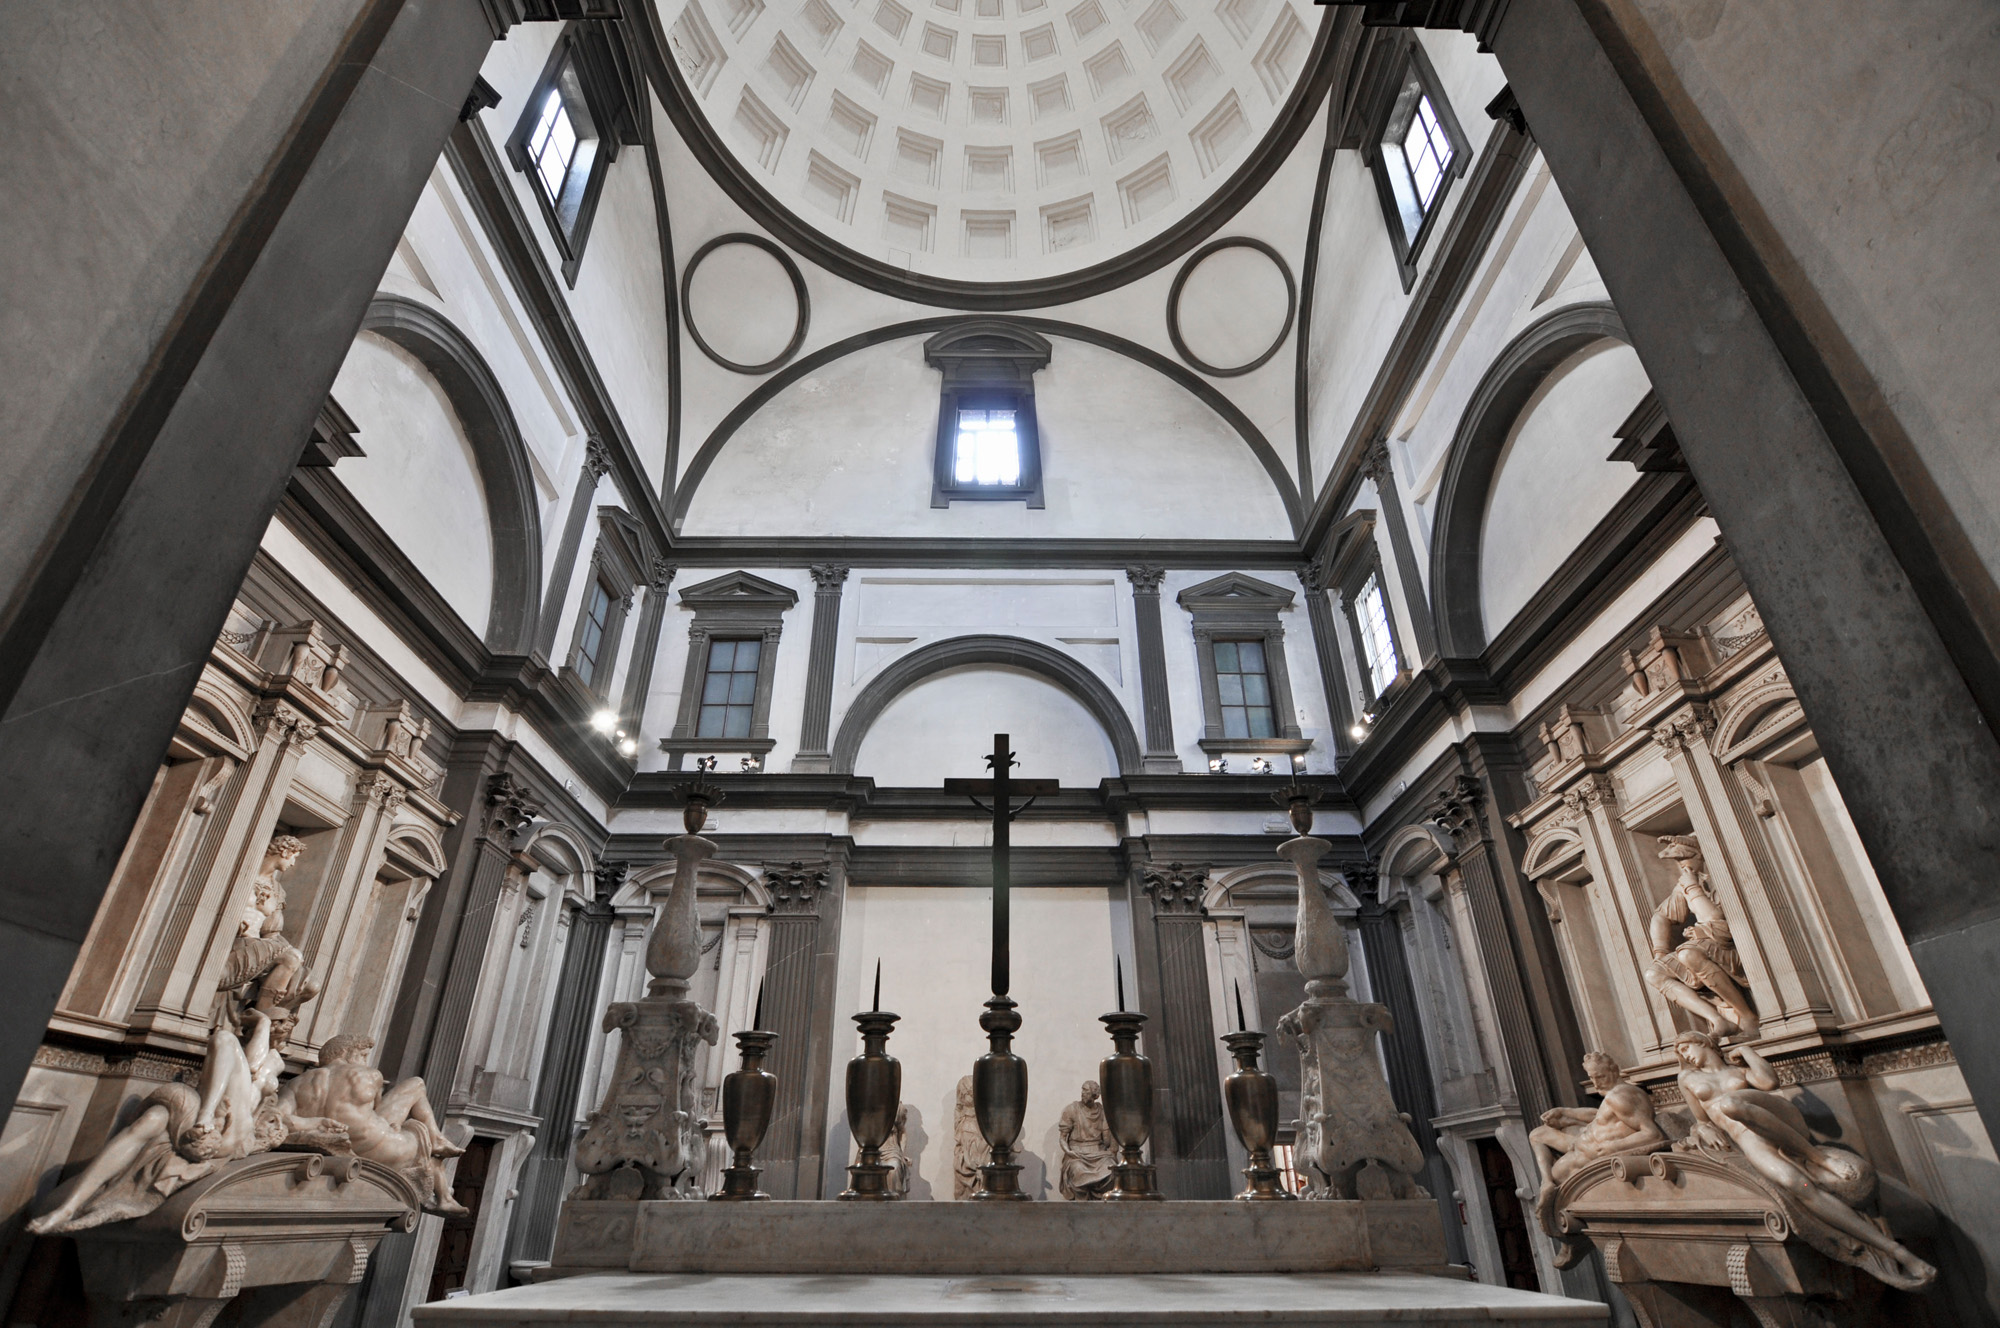 The Medici Chapels from behind the altarpiece